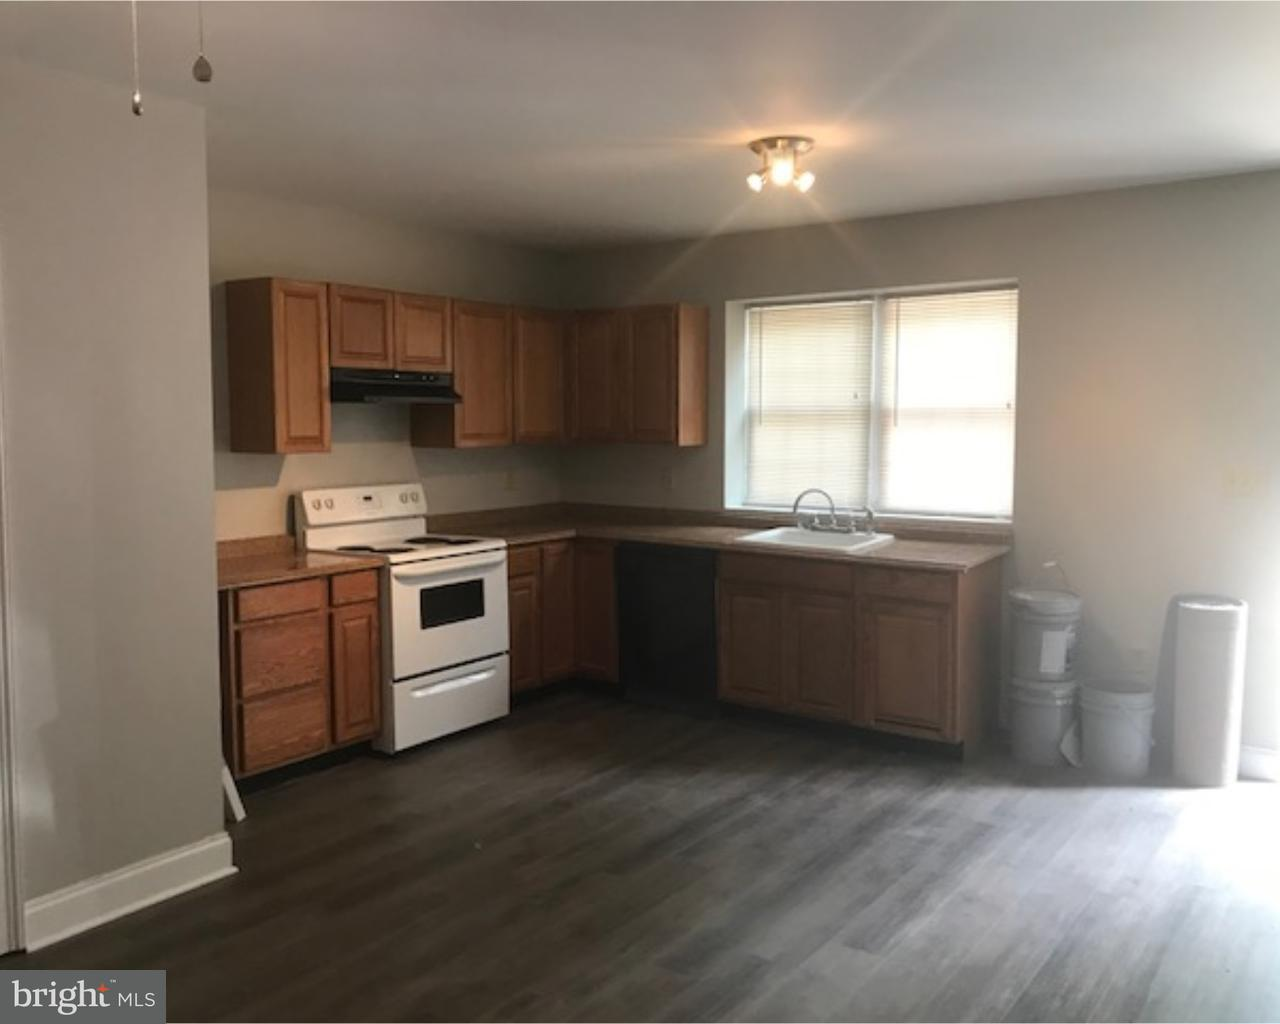 311 E MOORE ST, NORRISTOWN - Listed at $1,300, NORRISTOWN